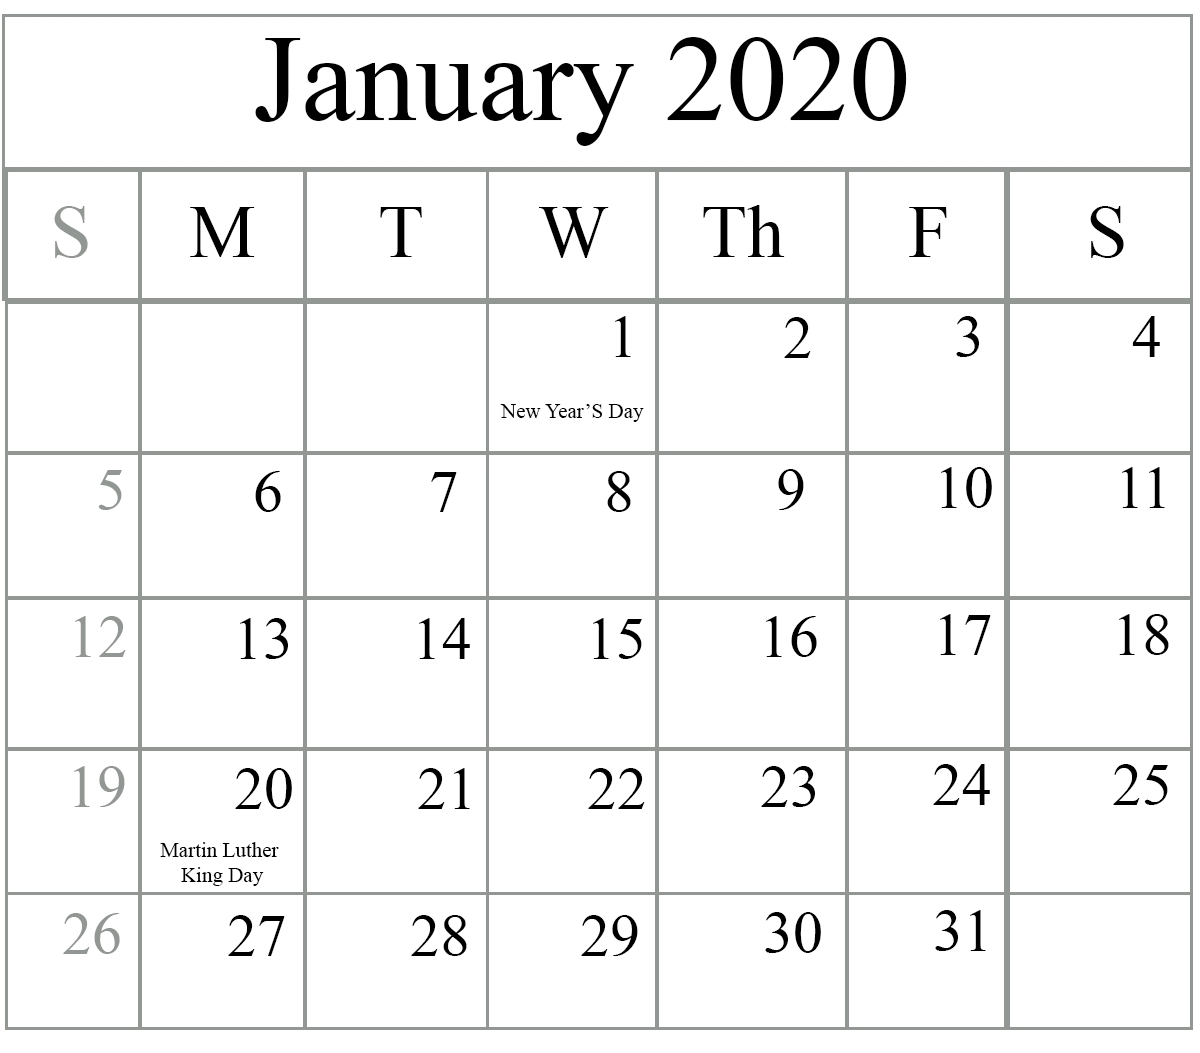 Free January 2020 Printable Calendar In Pdf, Excel & Word-January 2020 Calendar With Holidays